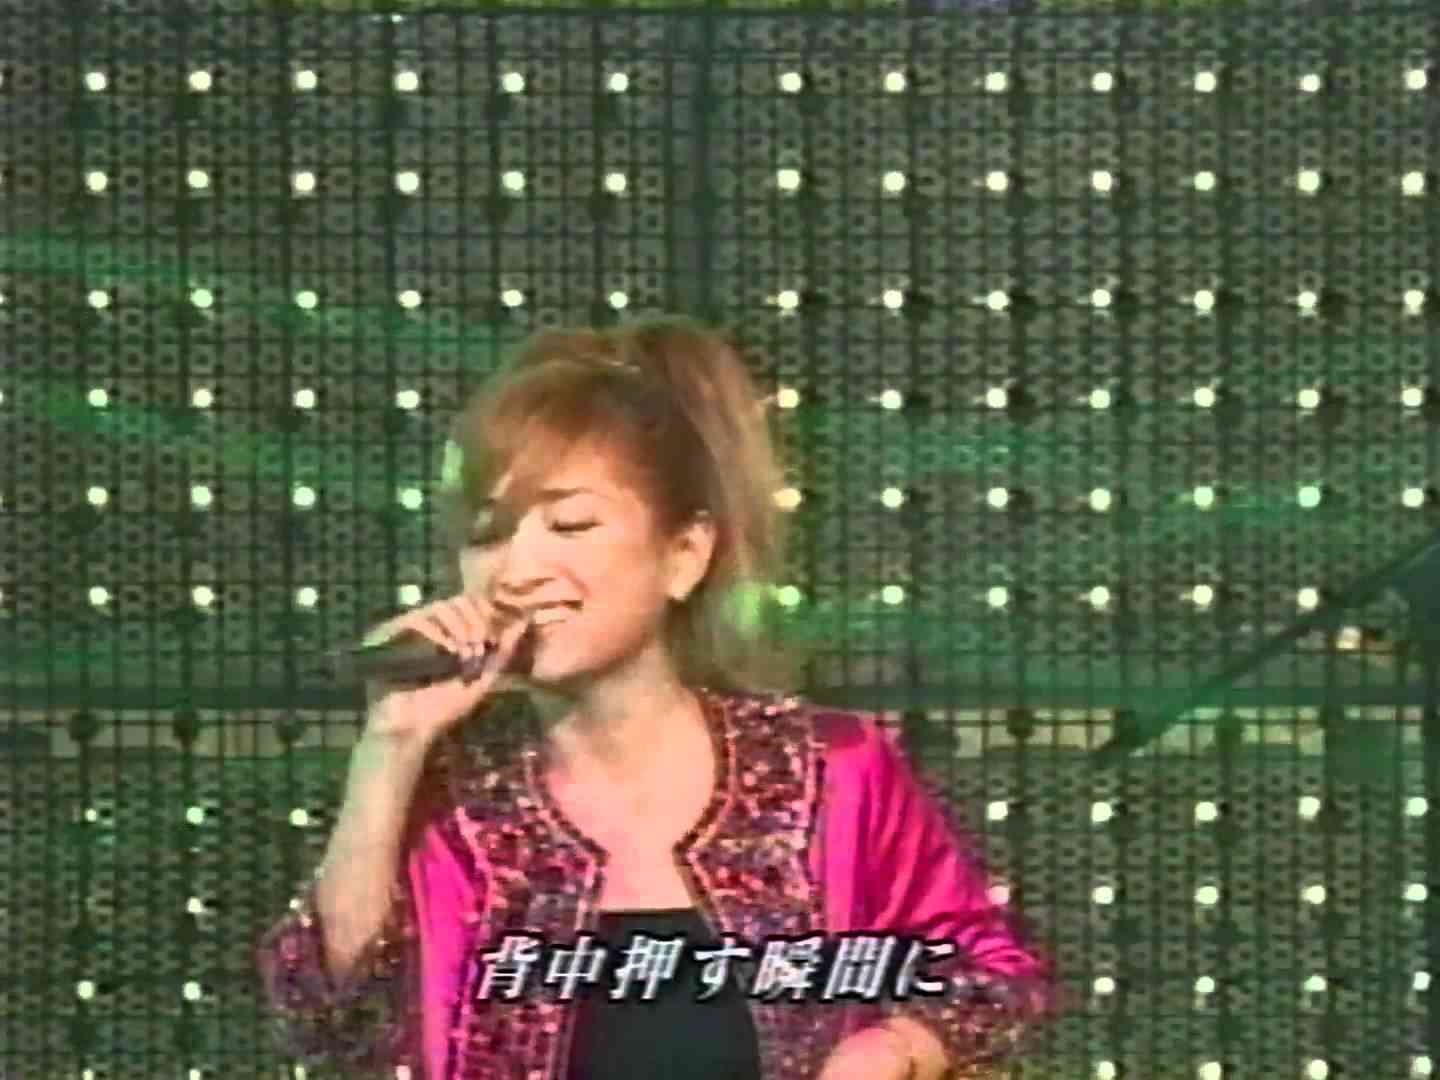 浜崎あゆみ Boys&Girls 1999-12-31 - YouTube